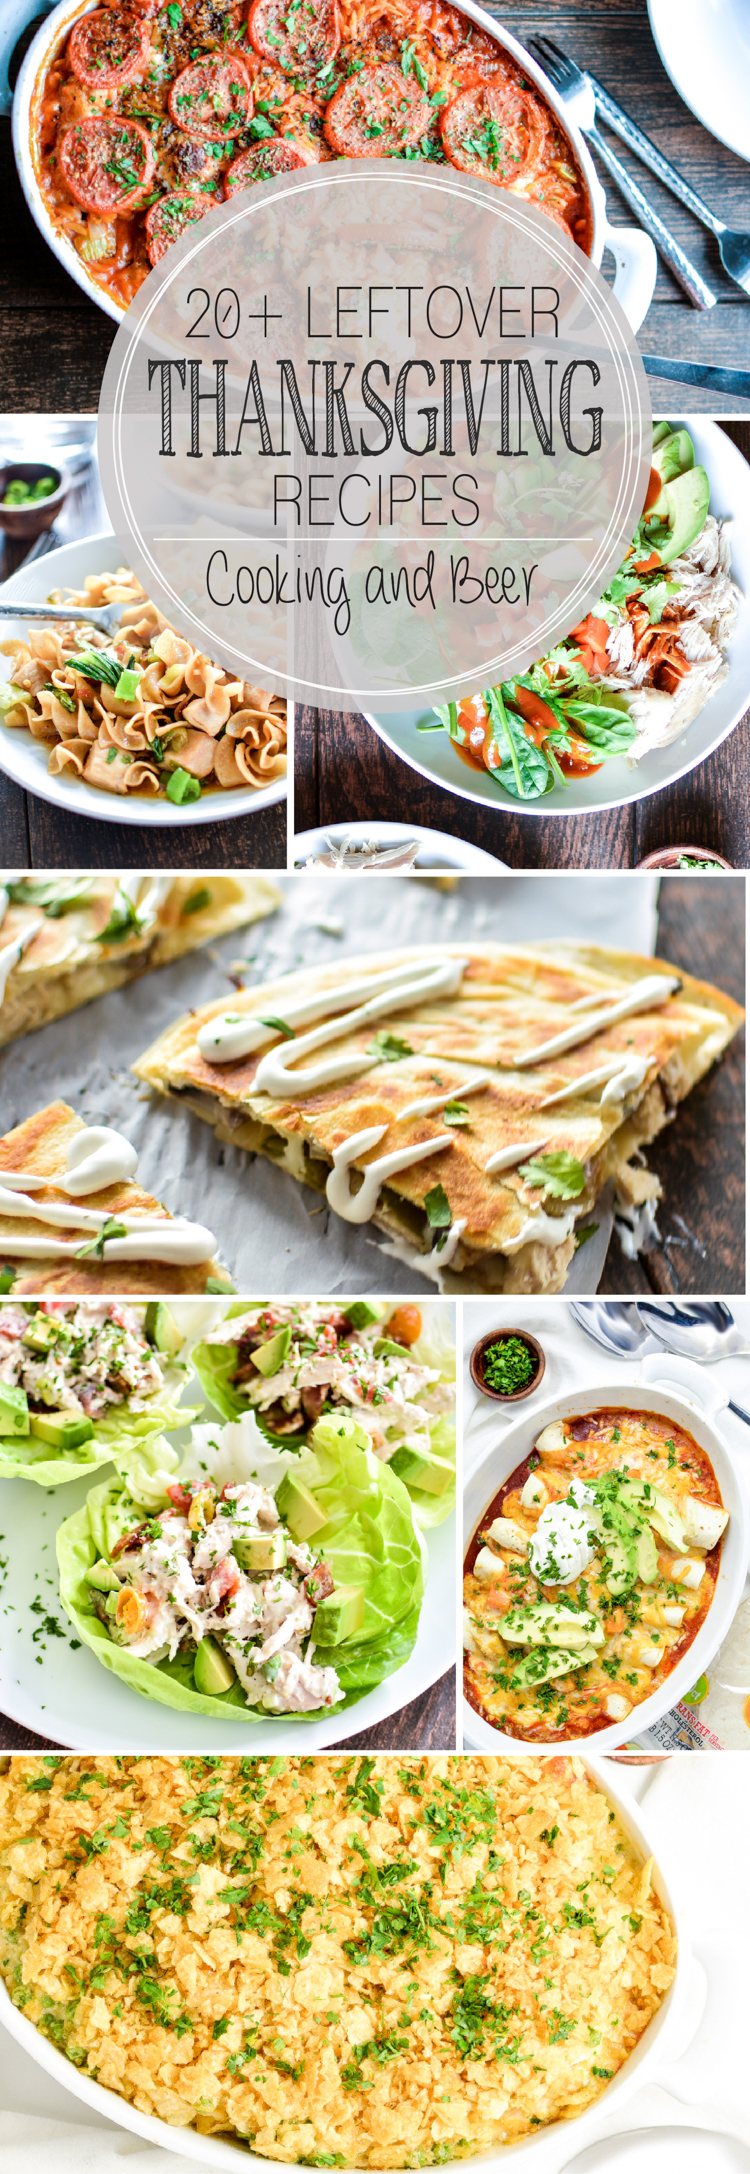 20+ Thanksgiving Leftovers Recipes centered around turkey!